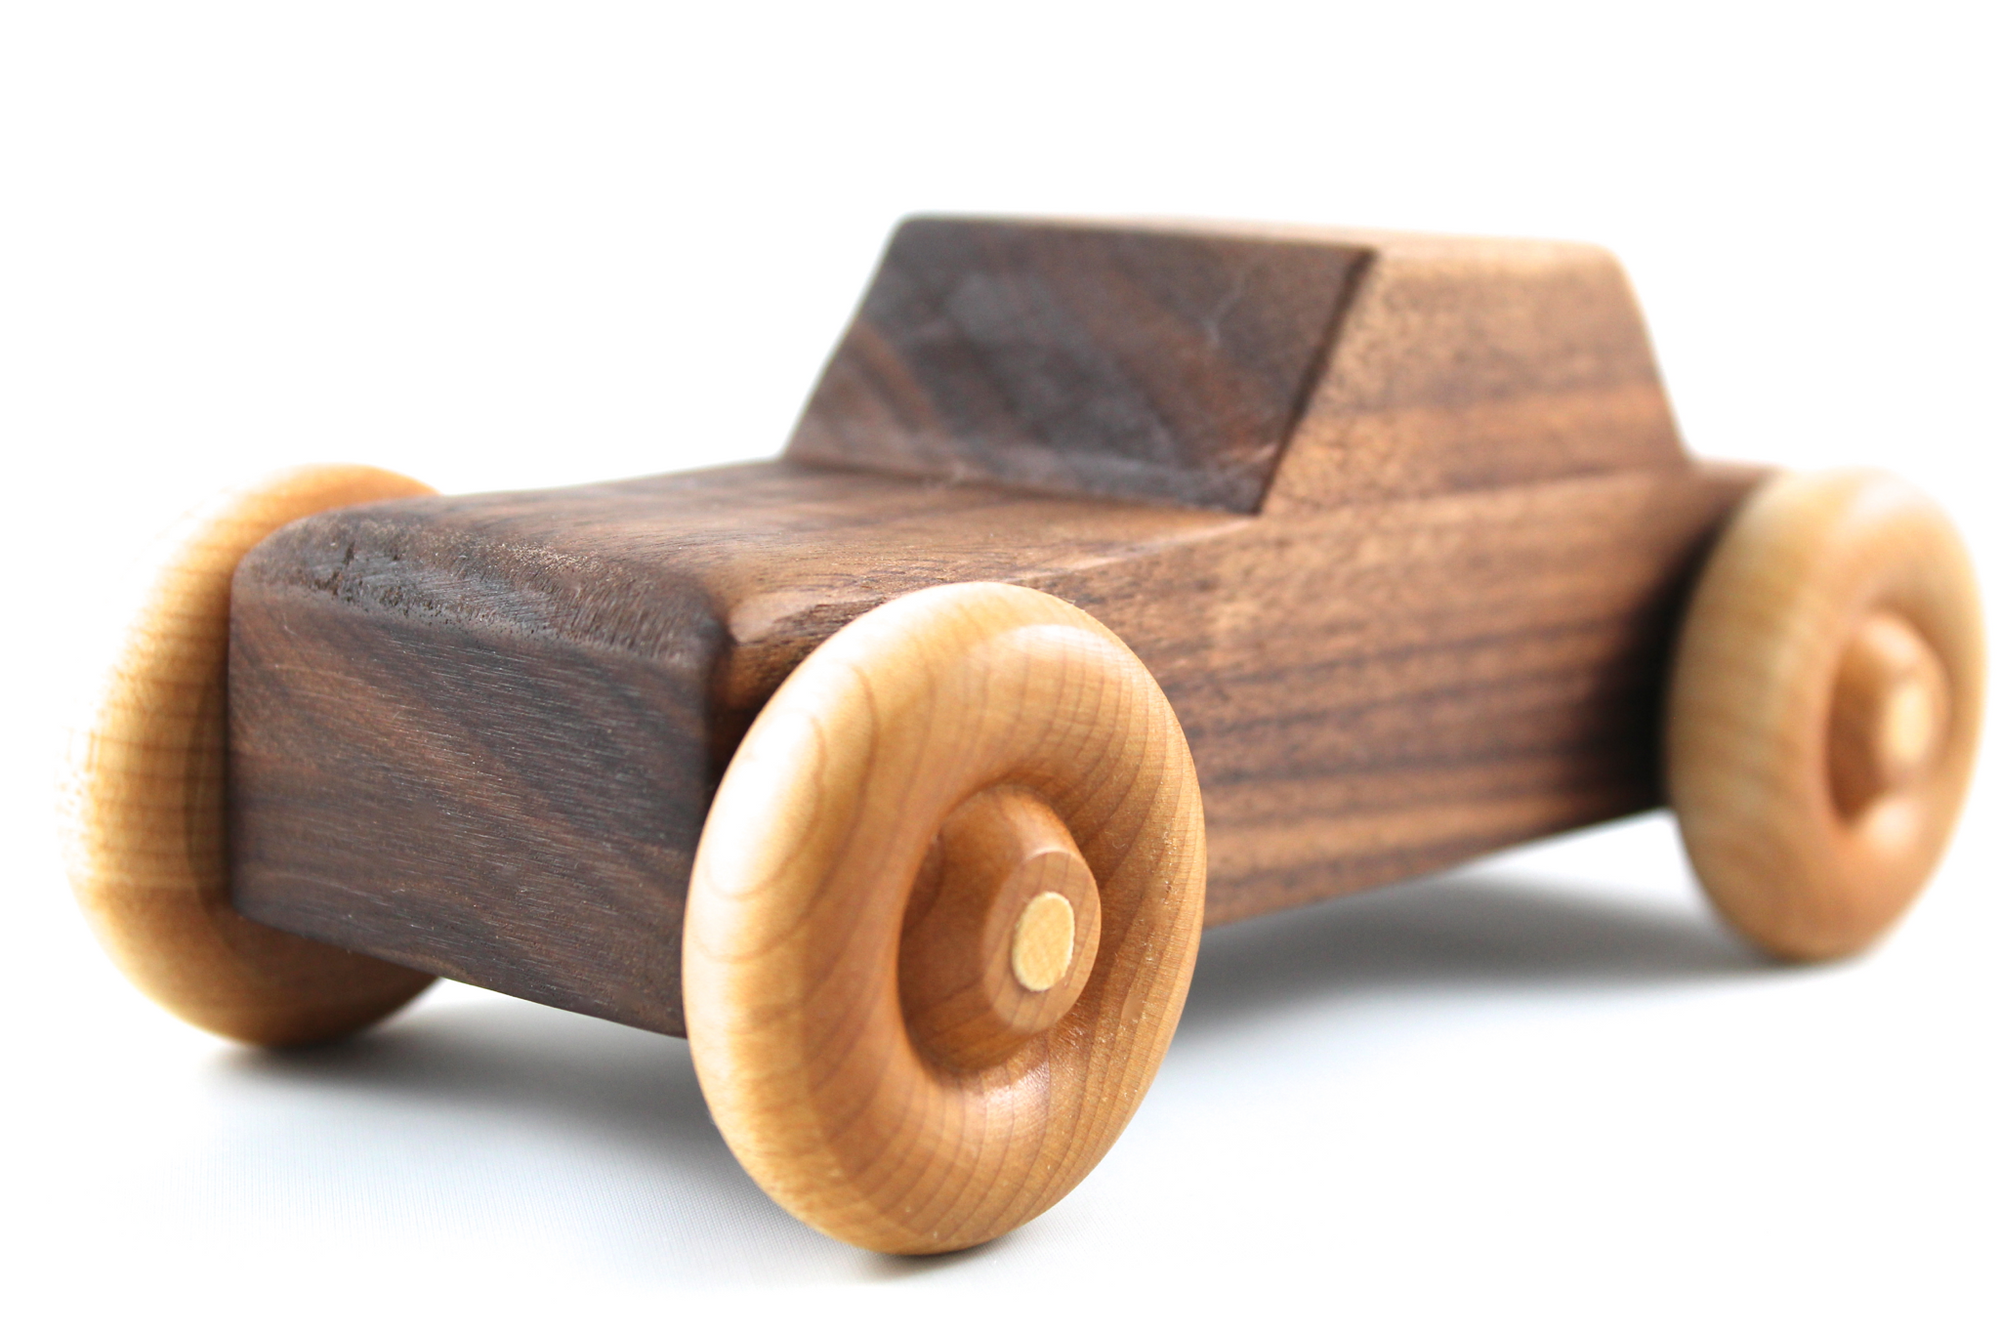 Handmade wooden toy car made out of a beautiful brown walnut.